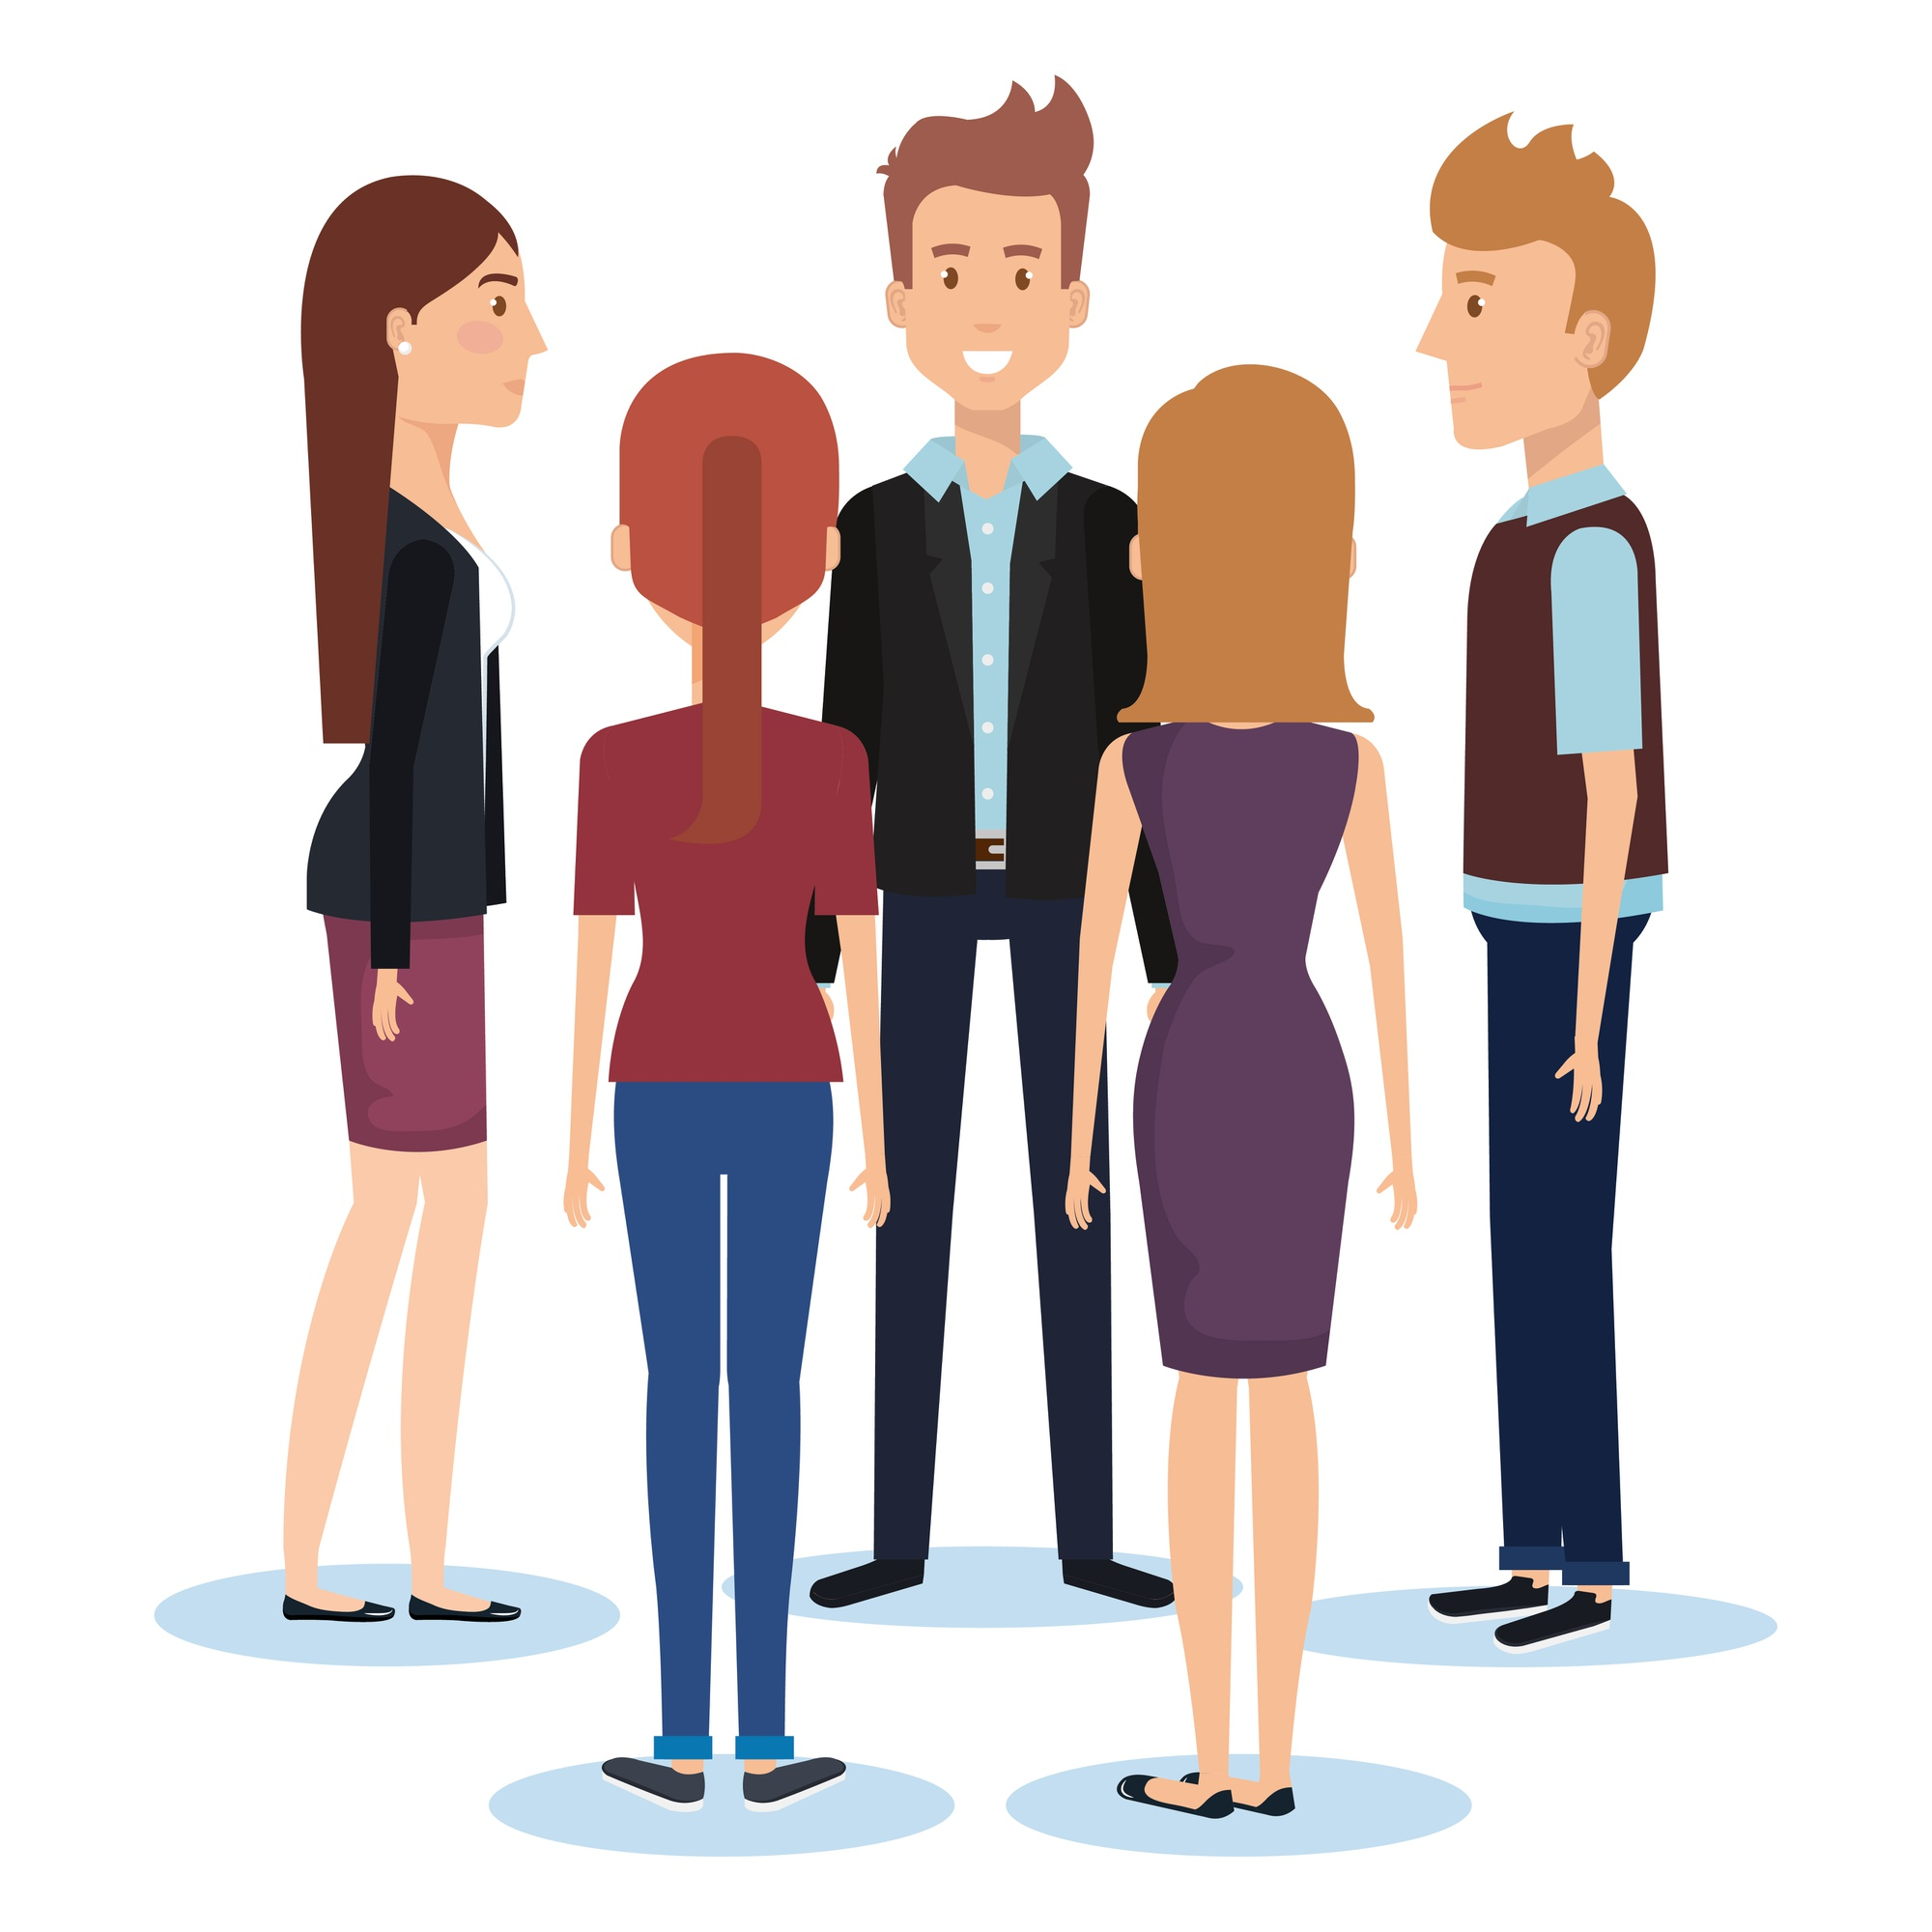 Group of young people poses and styles vector illustration design